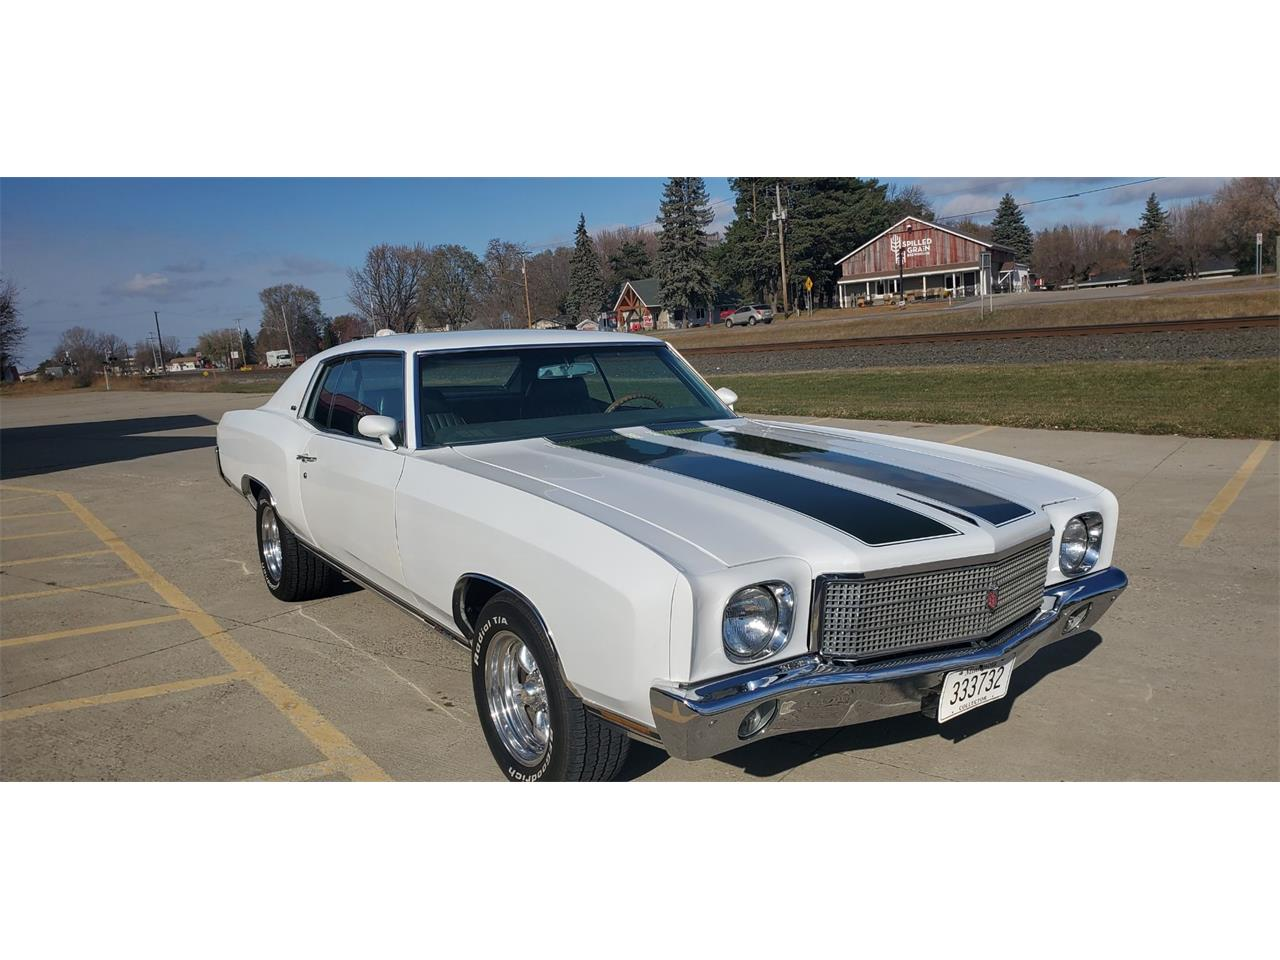 1970 Chevrolet Monte Carlo SS (CC-1295673) for sale in Annandale, Minnesota